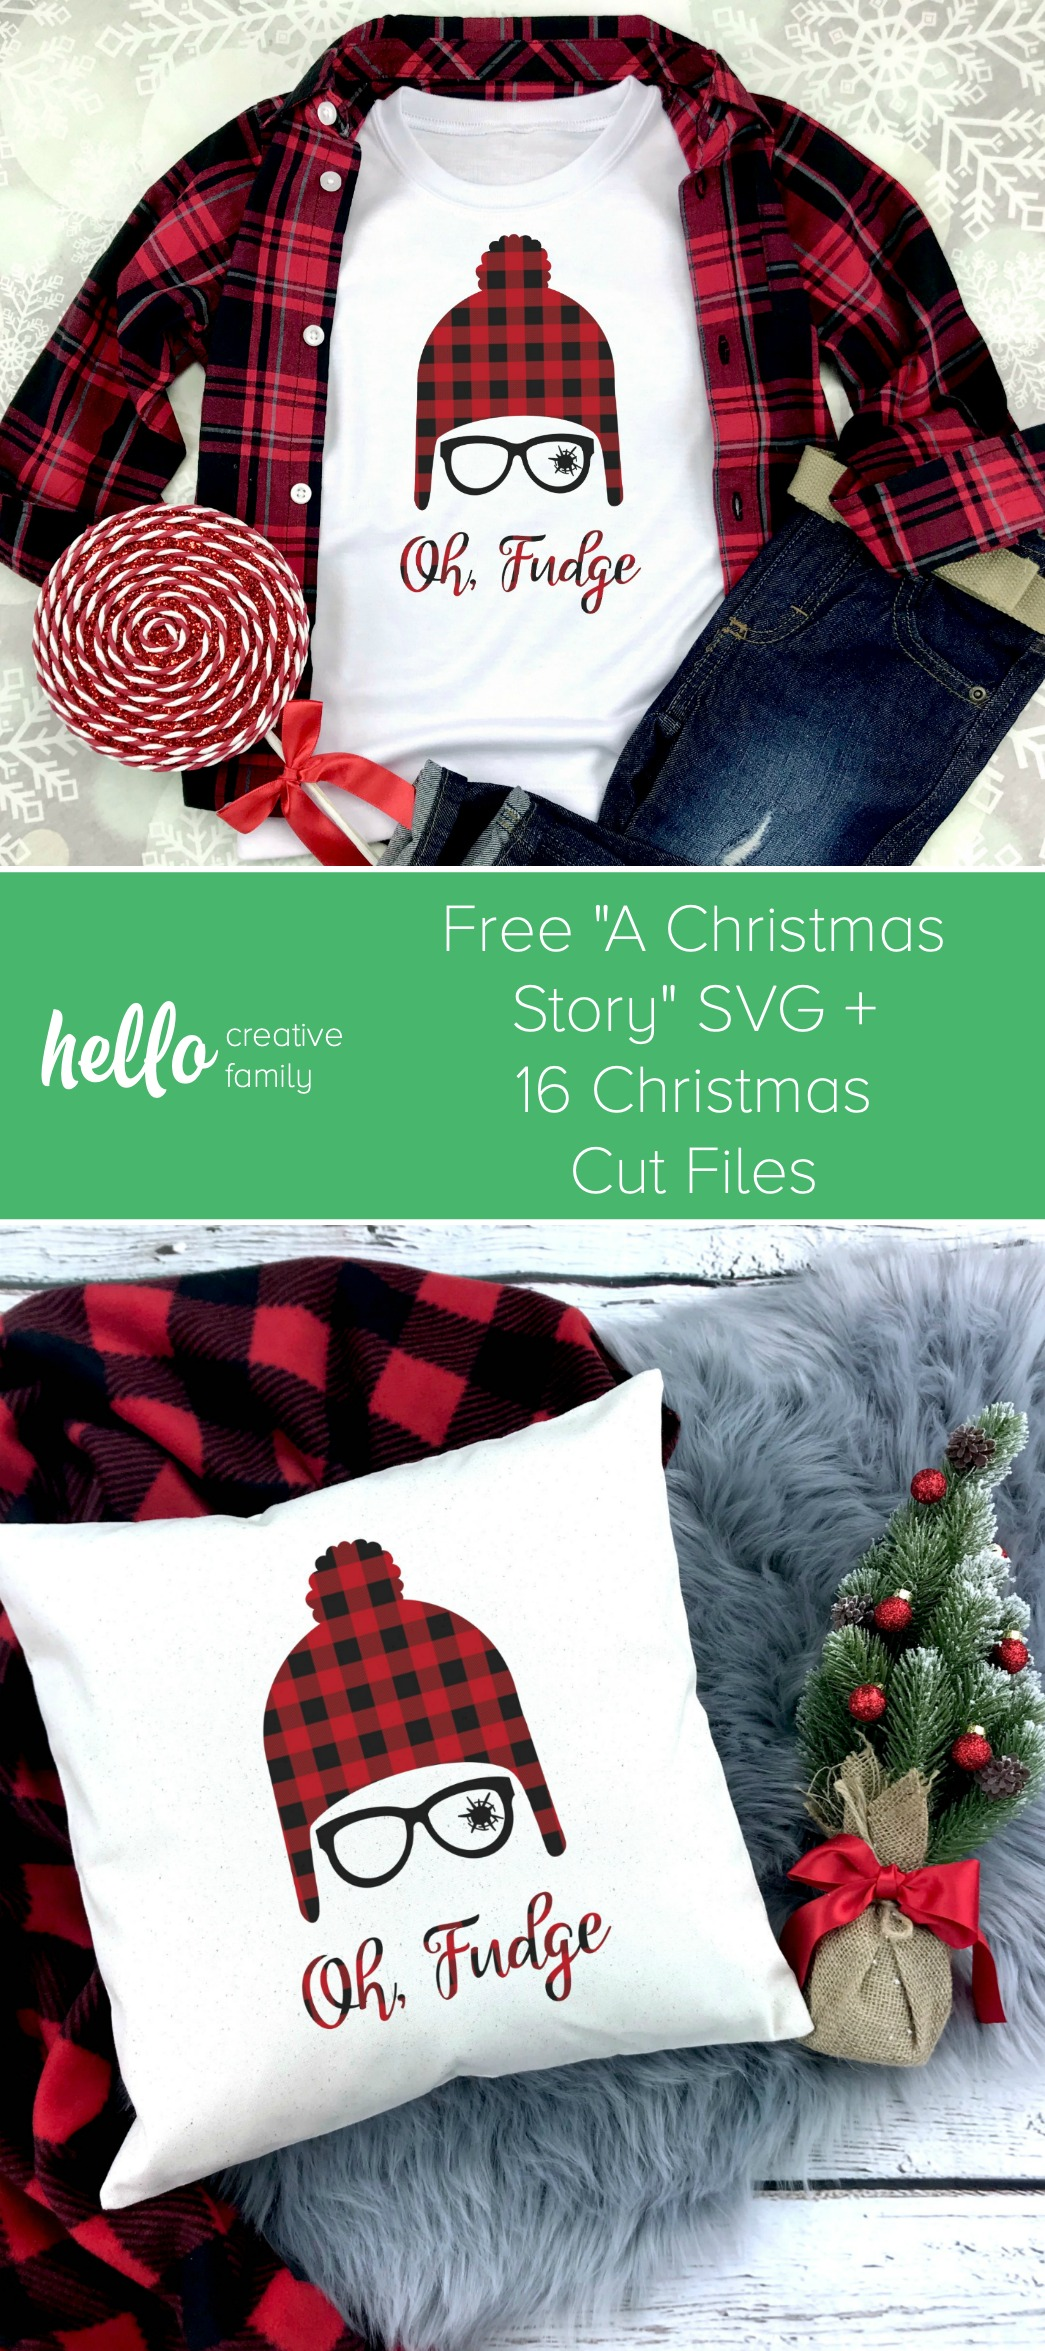 Once payment is confirmed, you will receive a zip file with: Free Christmas Story Svg 16 Christmas Cut Files